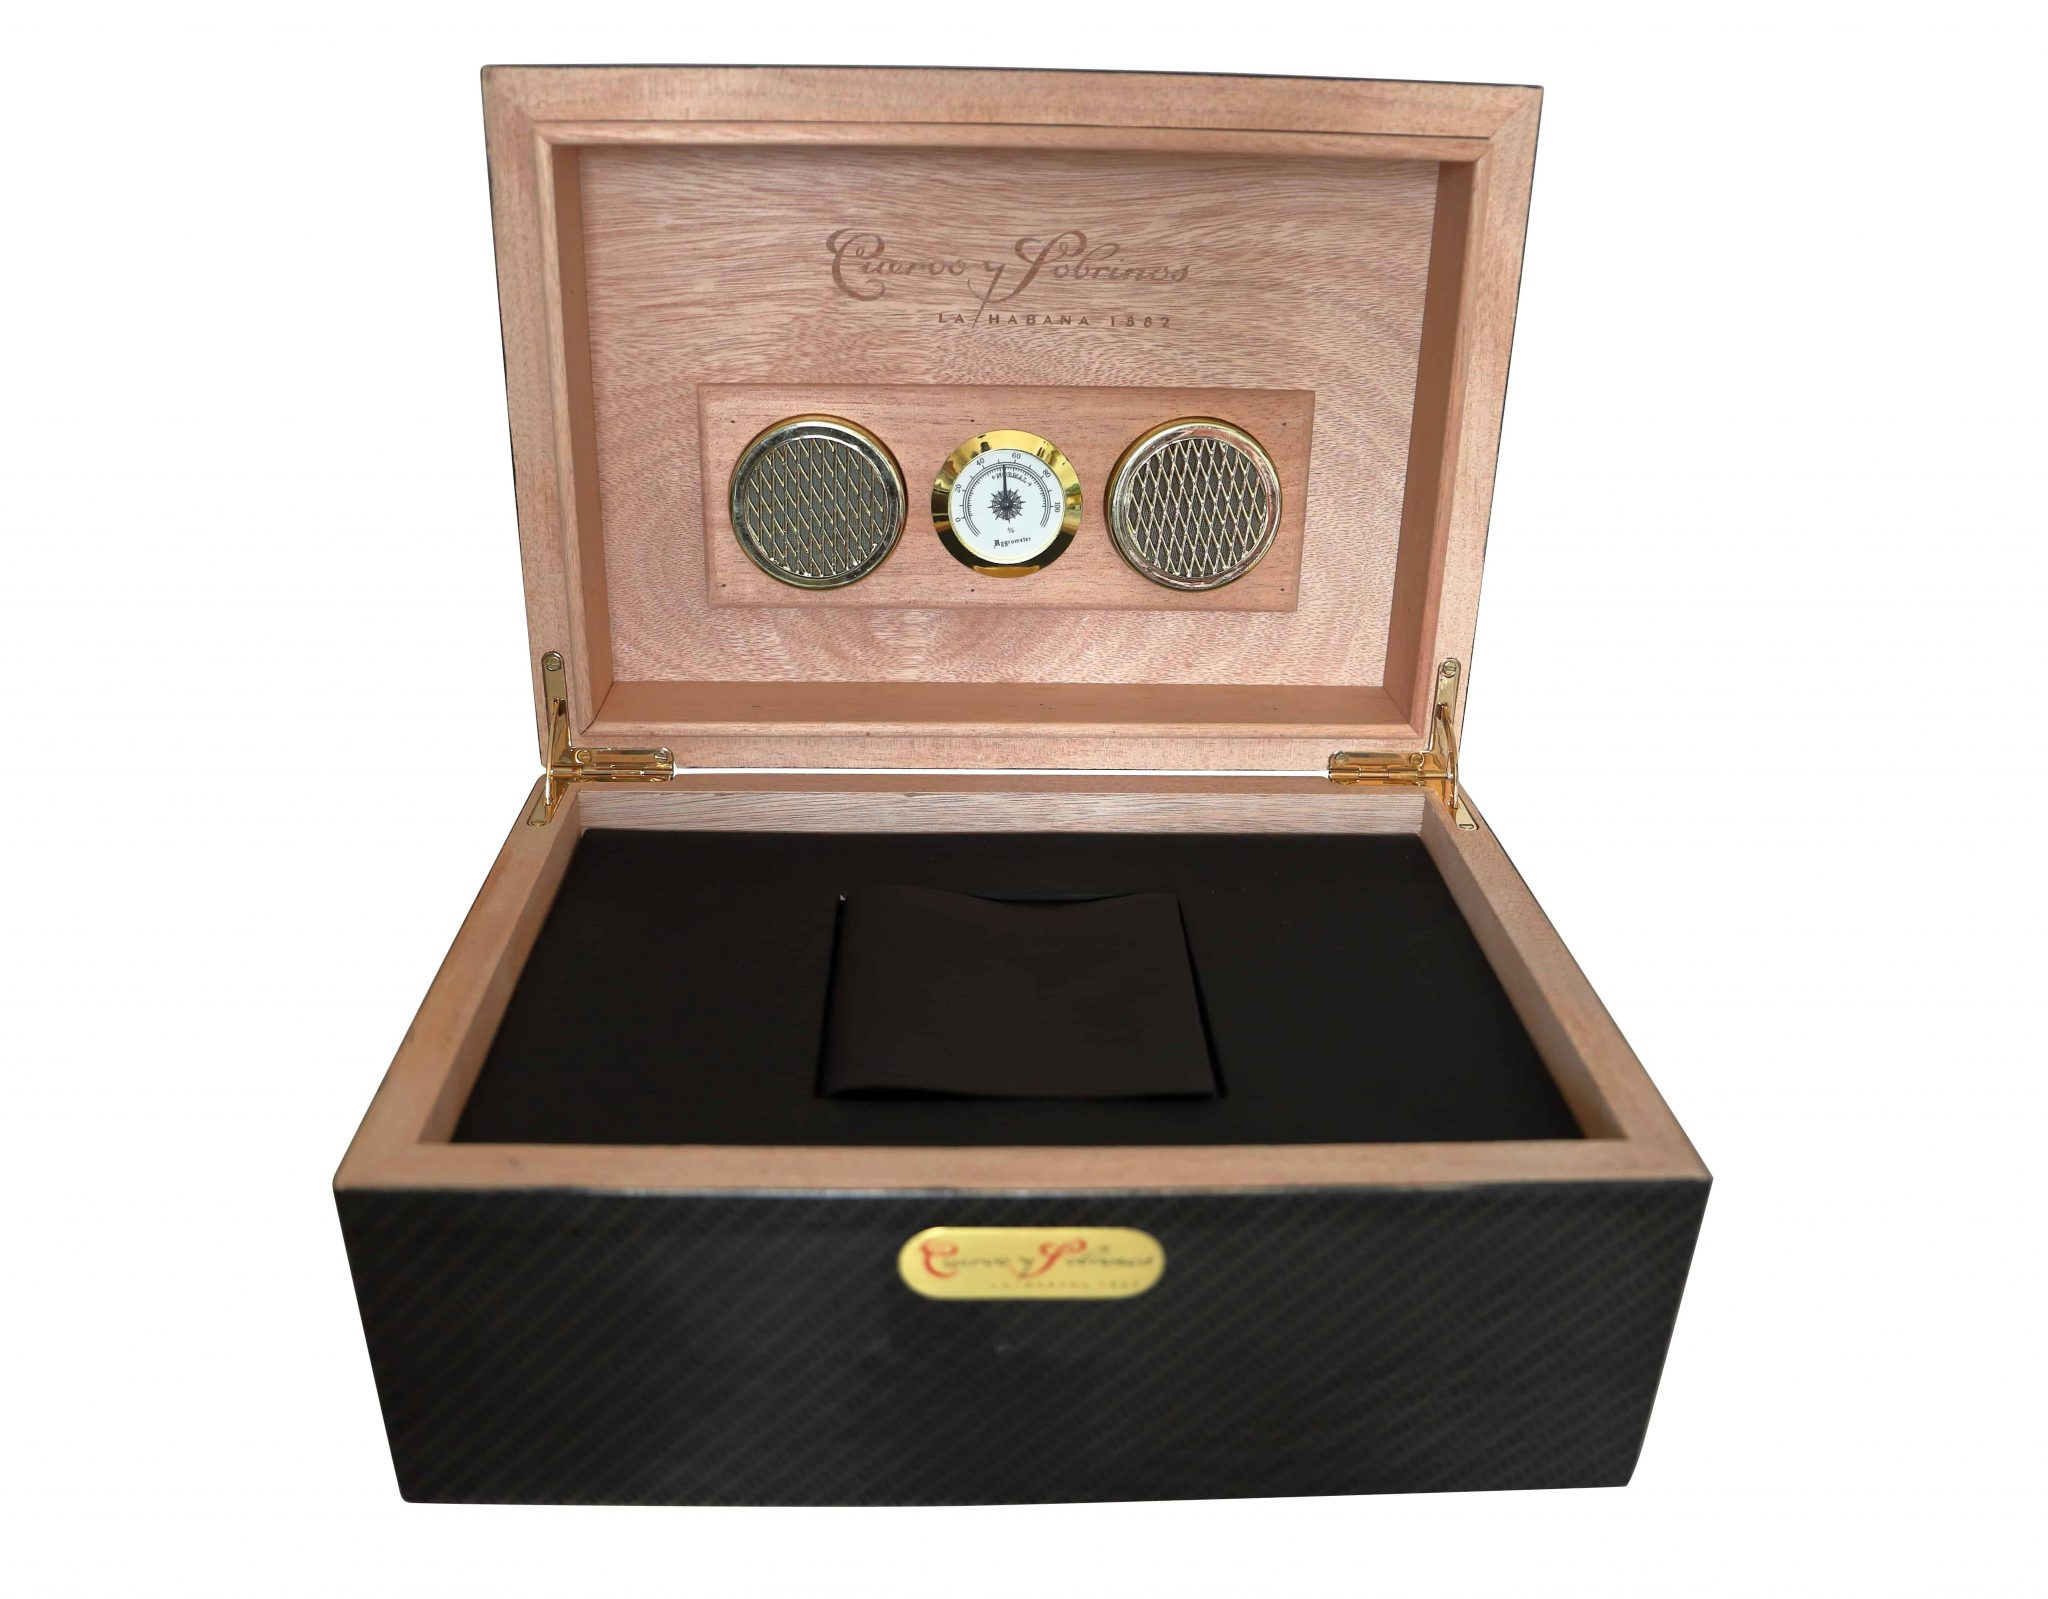 Lot #3616 Cuervo y Sobrinos Carbon Fiber Humidor Watch Box